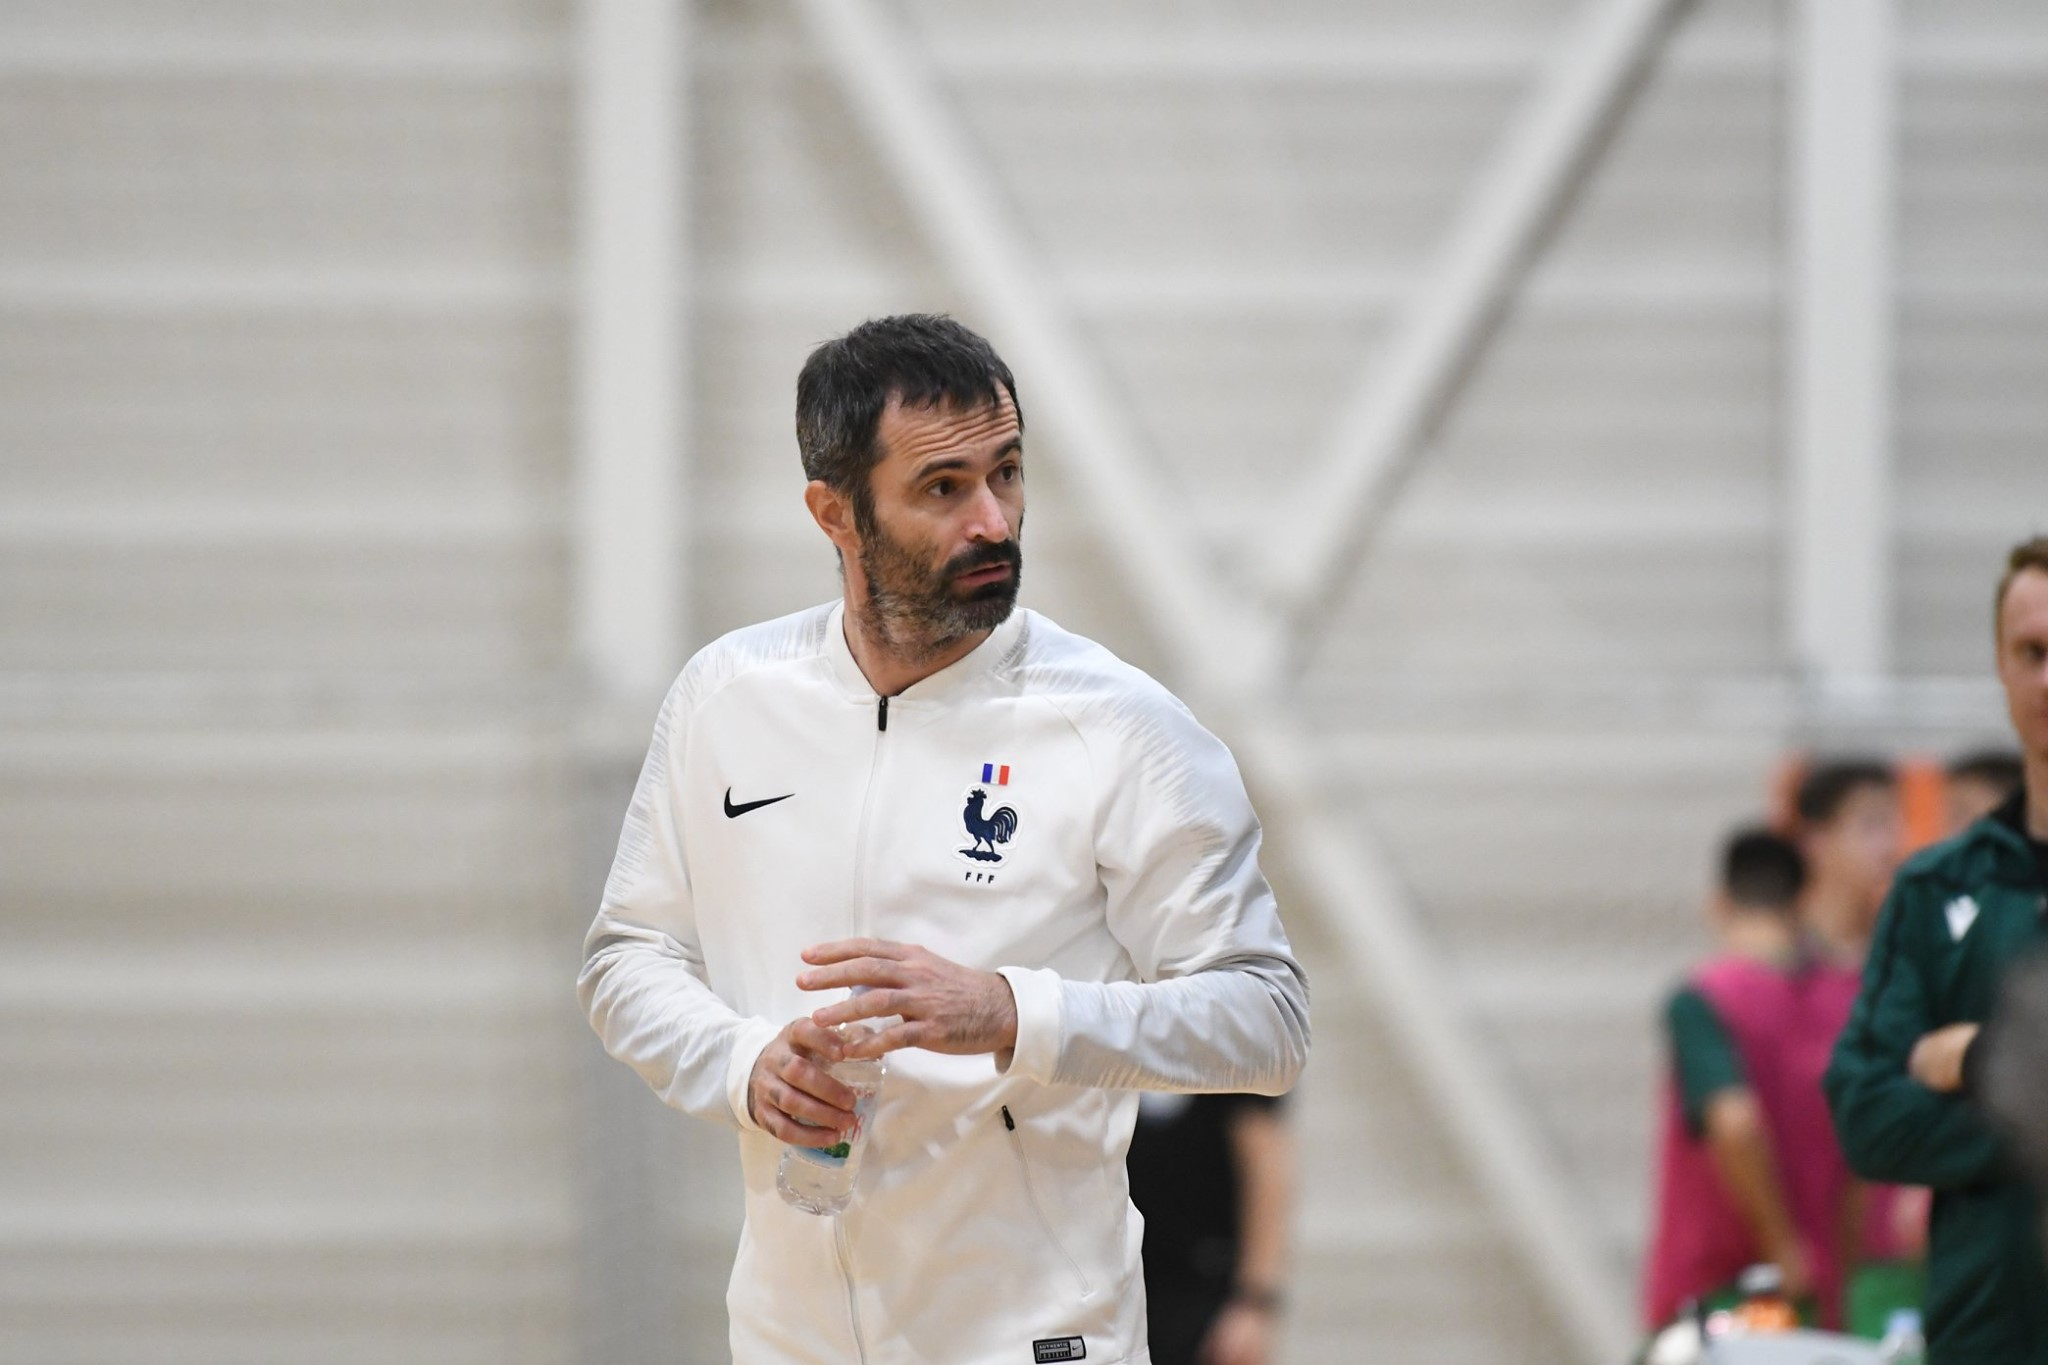 Raphaël Reynaud France Futsal coach